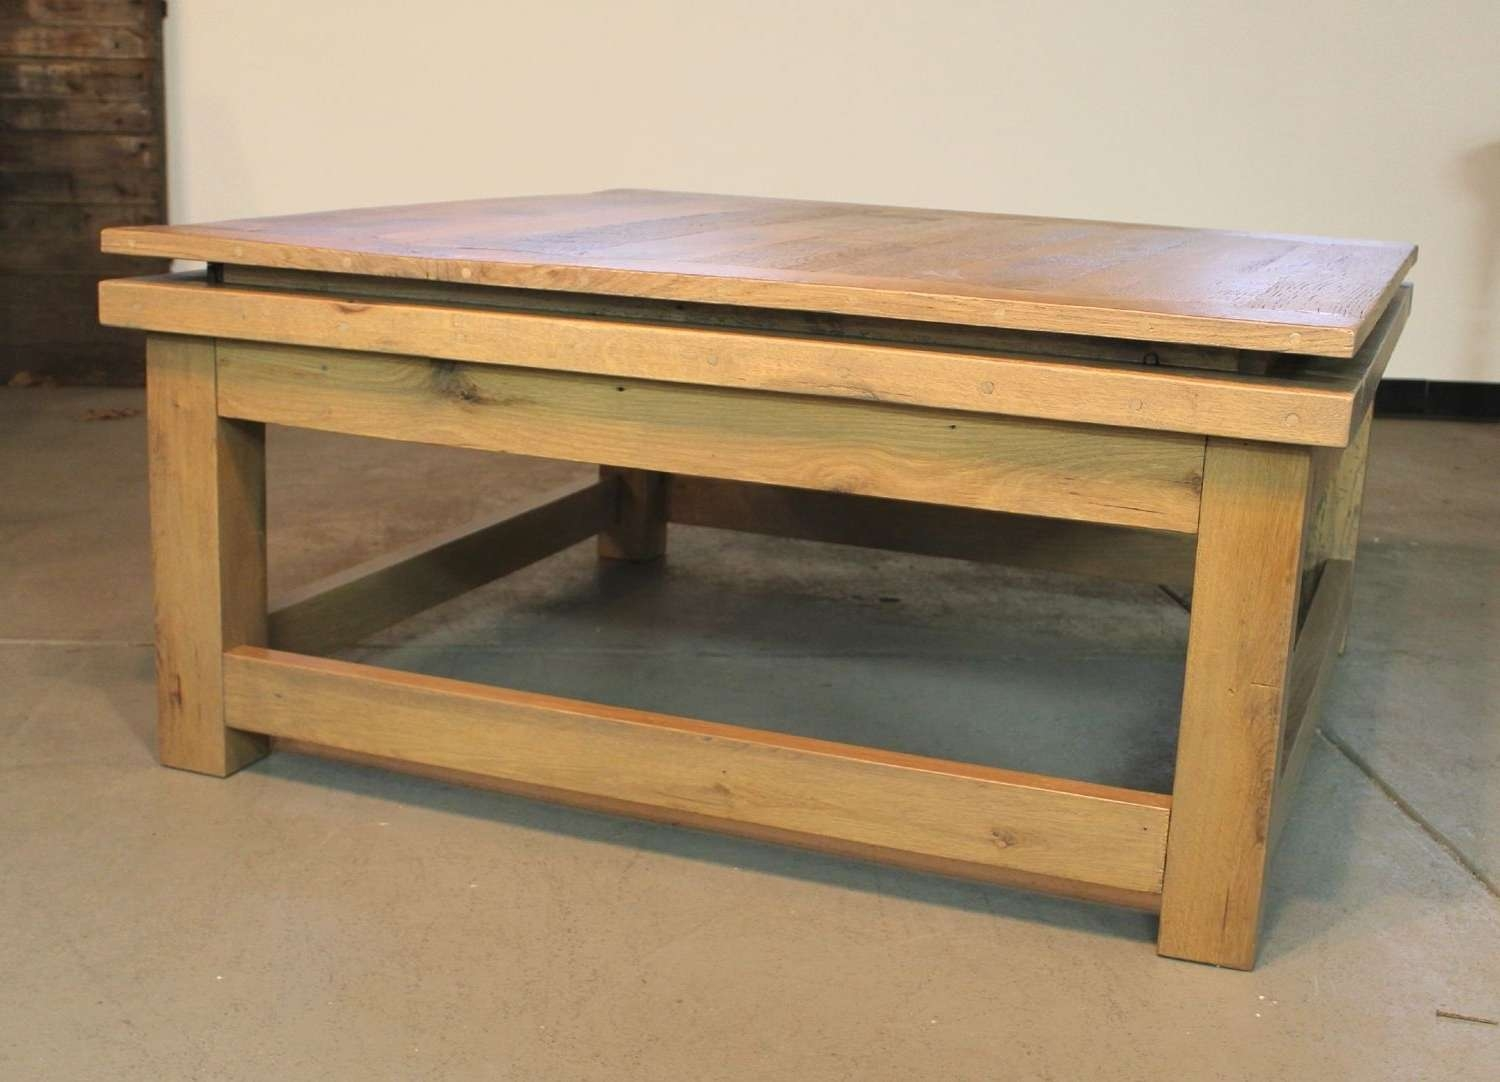 Hand Made Custom Square Oak Coffee Table From Reclaimed Oak In Well Known Reclaimed Oak Coffee Tables (View 3 of 20)